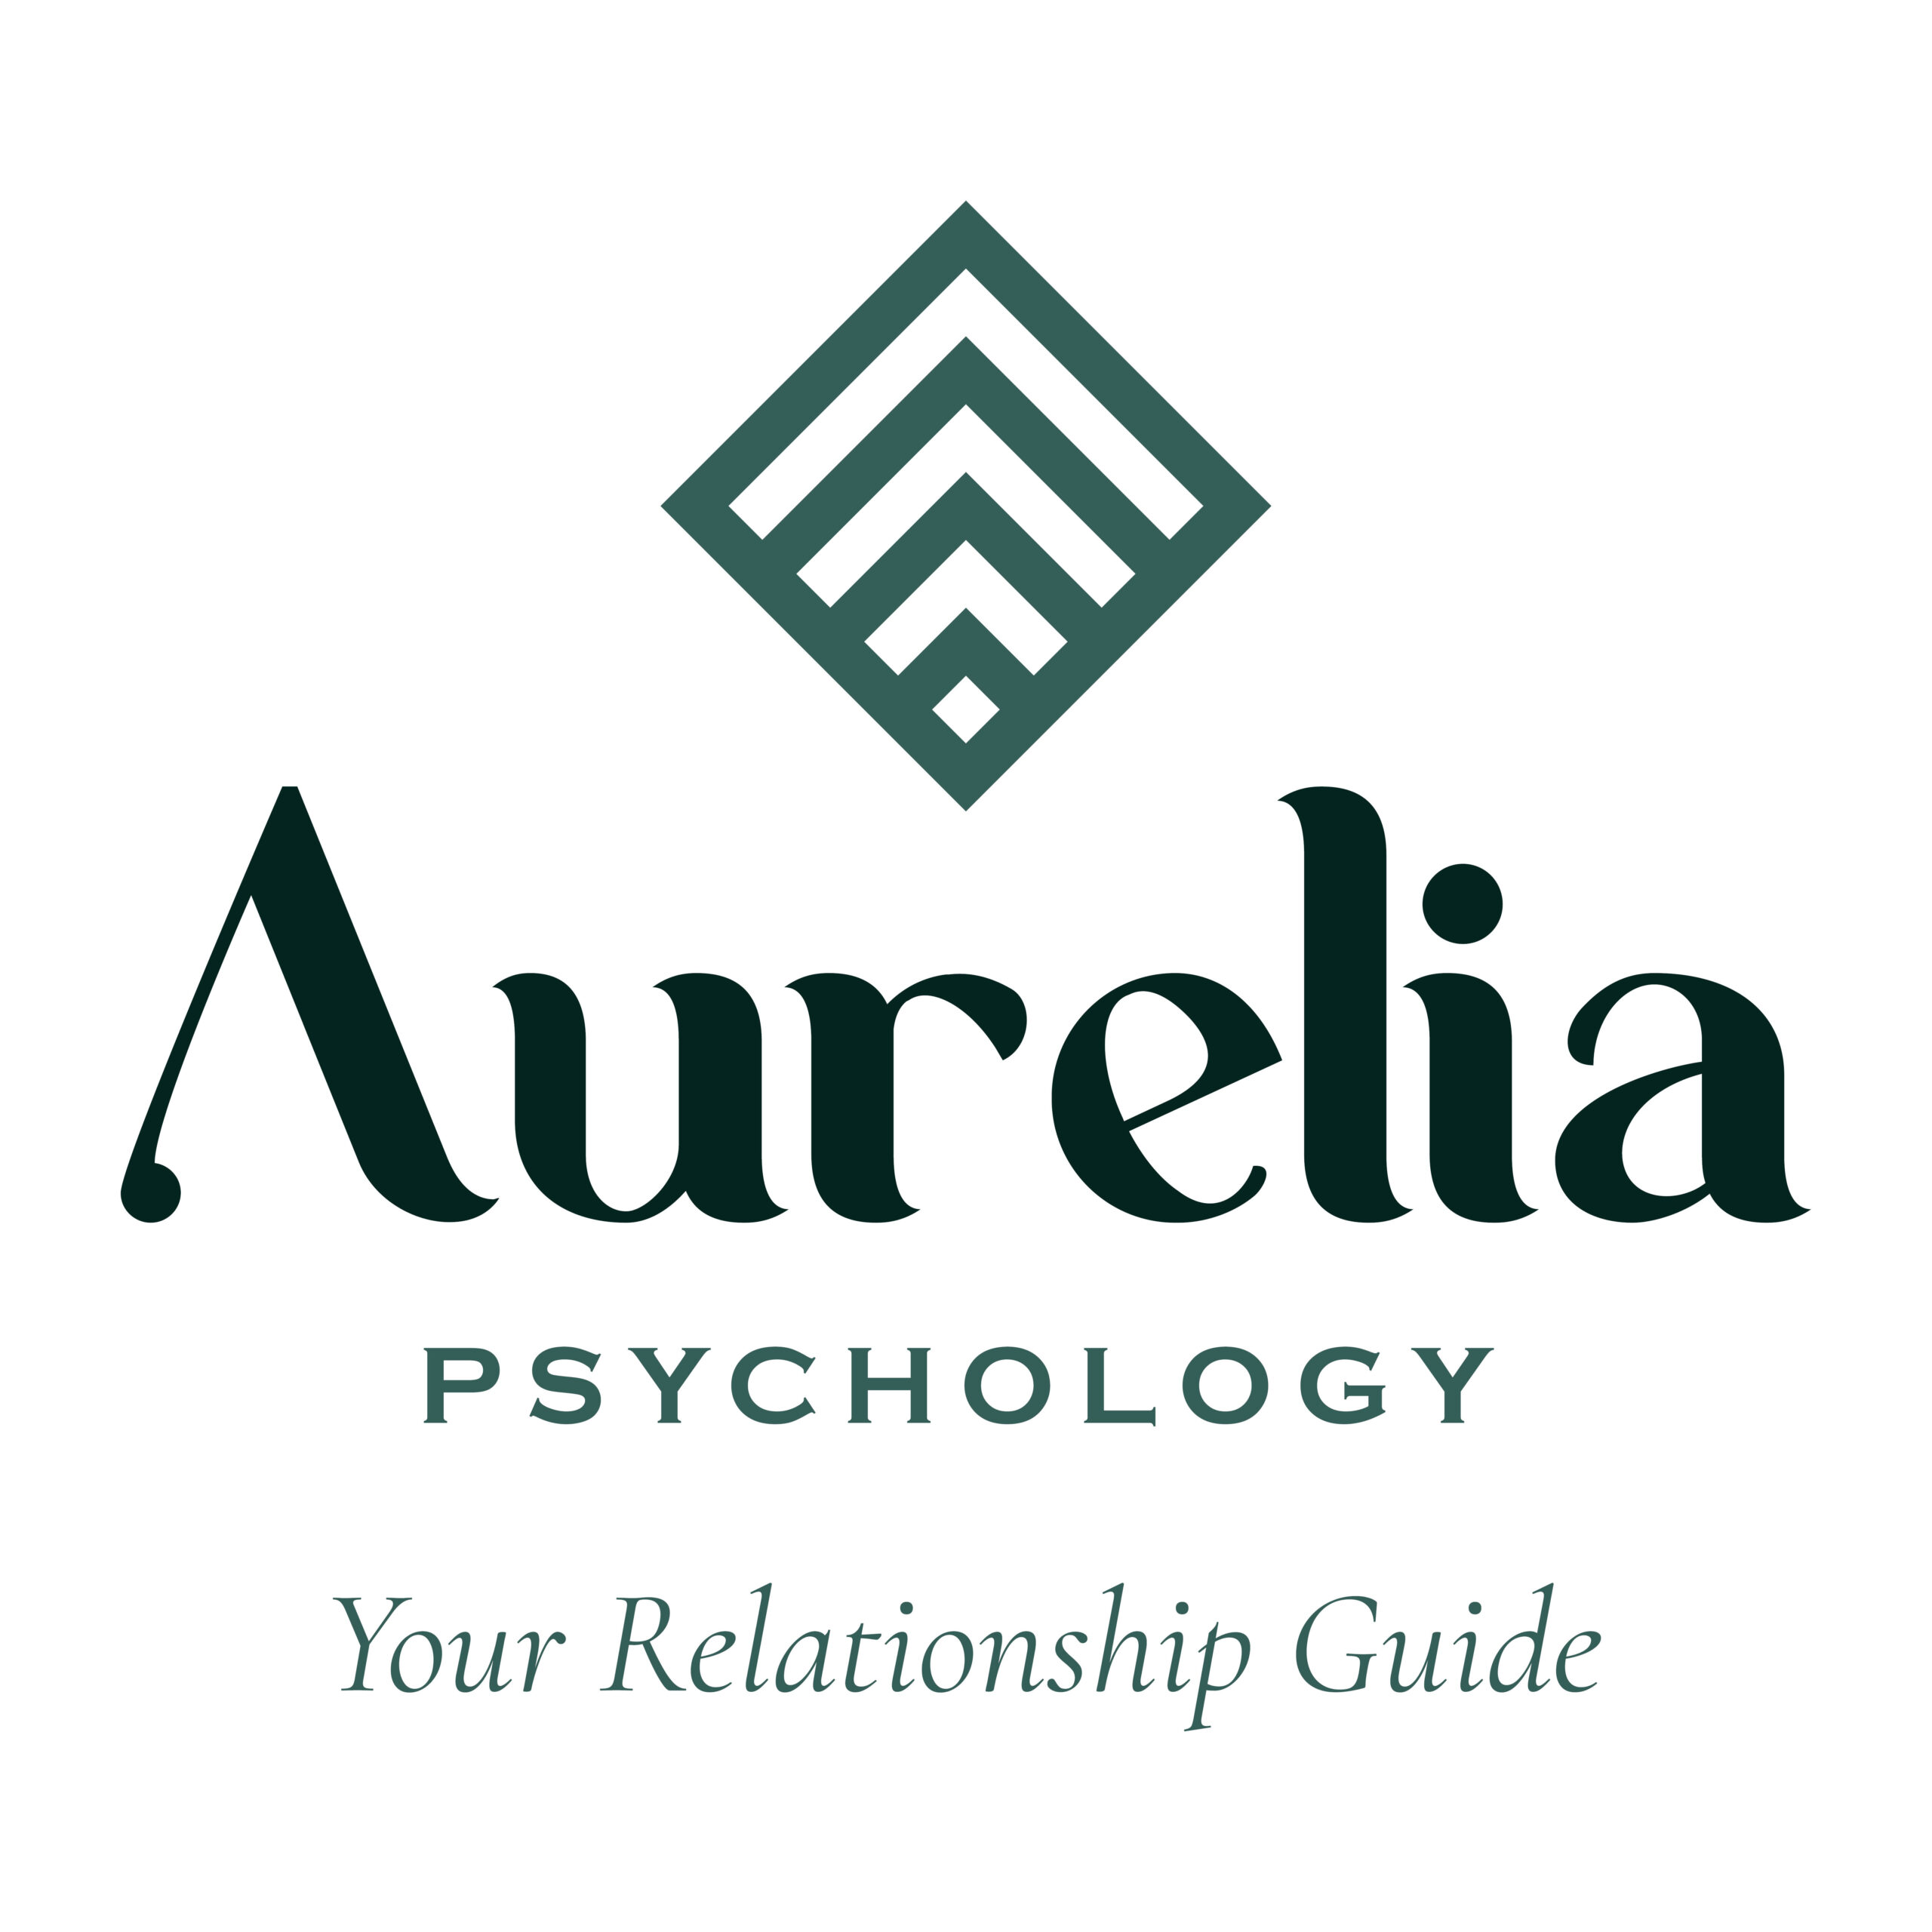 Aurelia Psychology